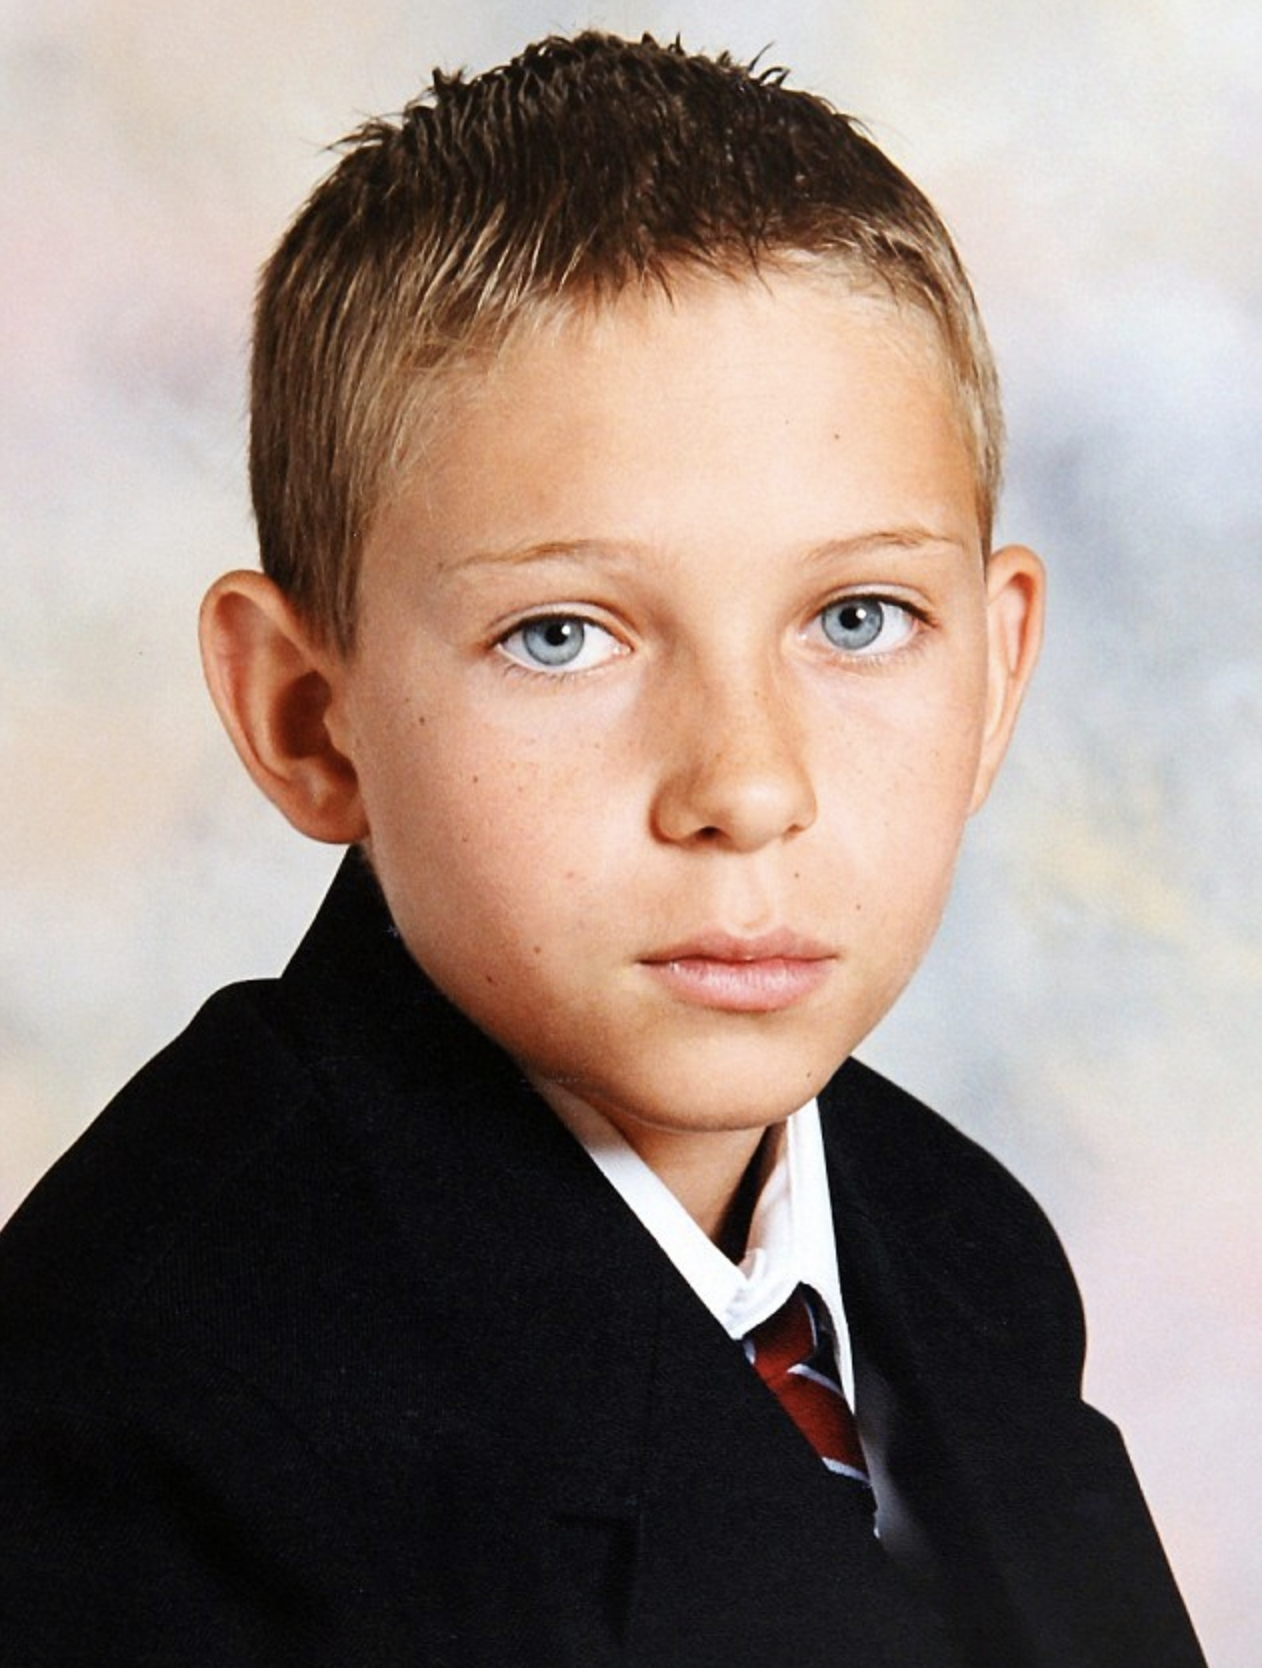 Joey Essex young